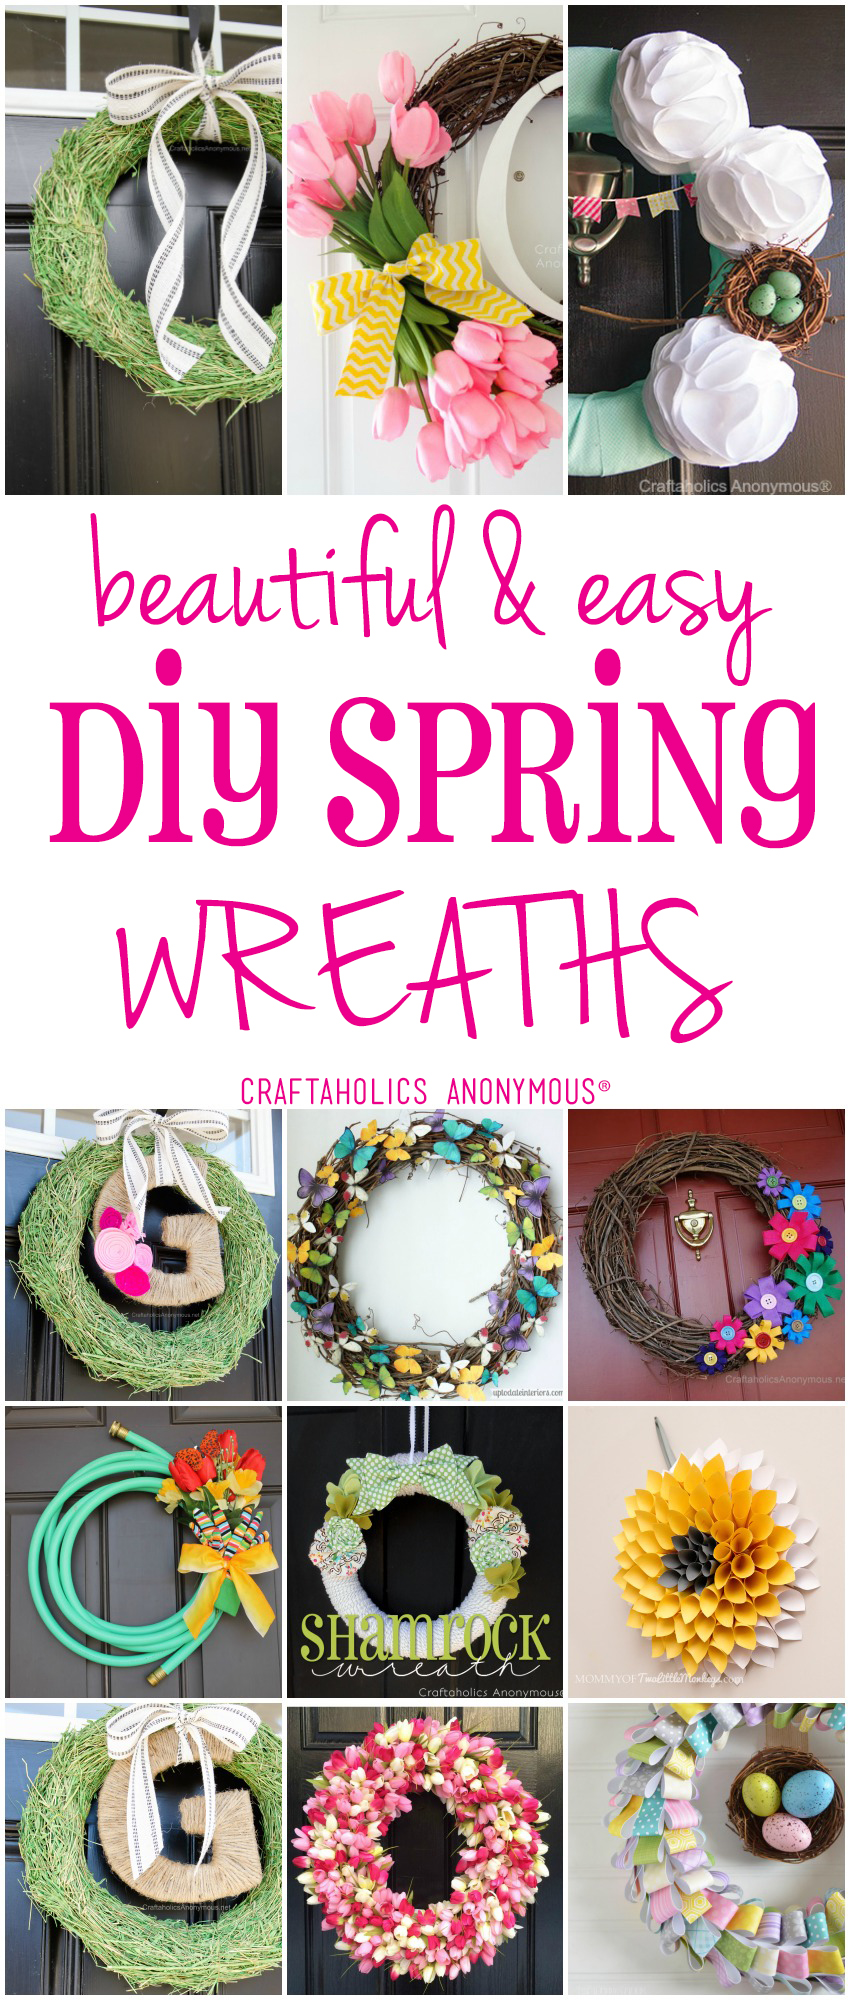 Easy and Beautiful DIY Spring Wreaths to add a touch of spring to your front porch at craftaholicsanonymous.net